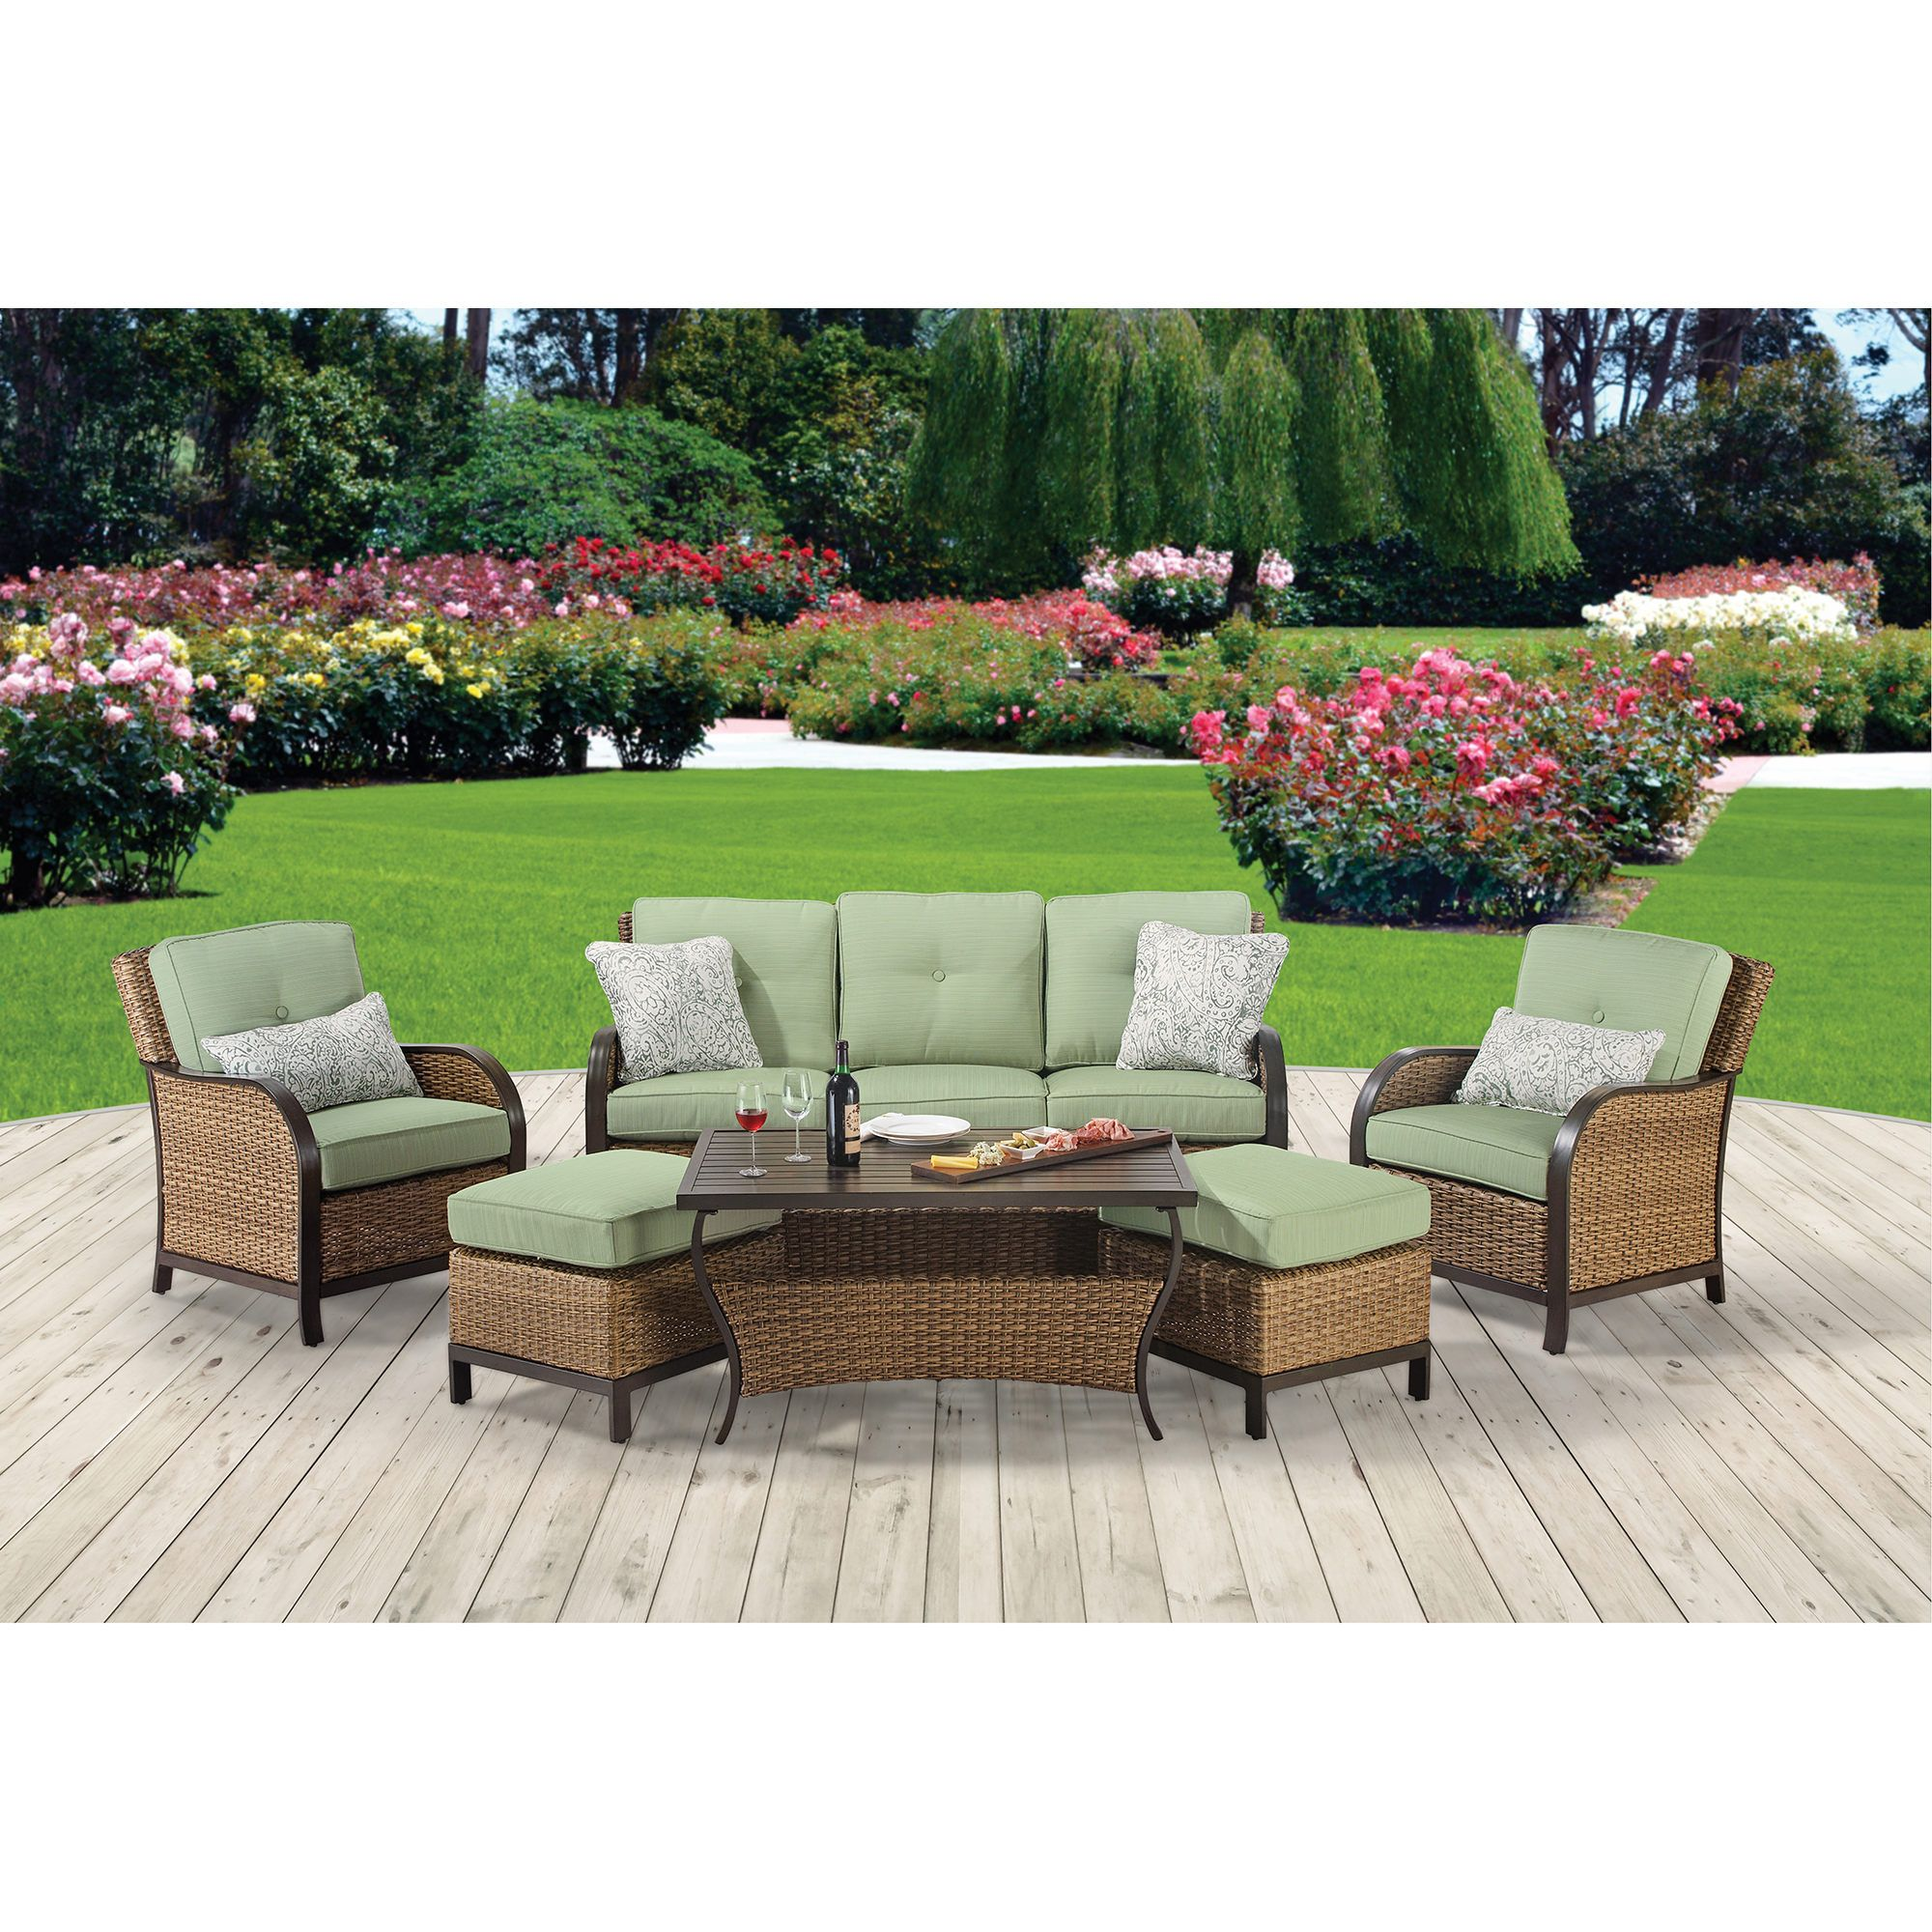 Attrayant Berkley Jensen Nantucket 6 Pc. Wicker Deep Seating Set   Dupione Aloe   BJu0027s